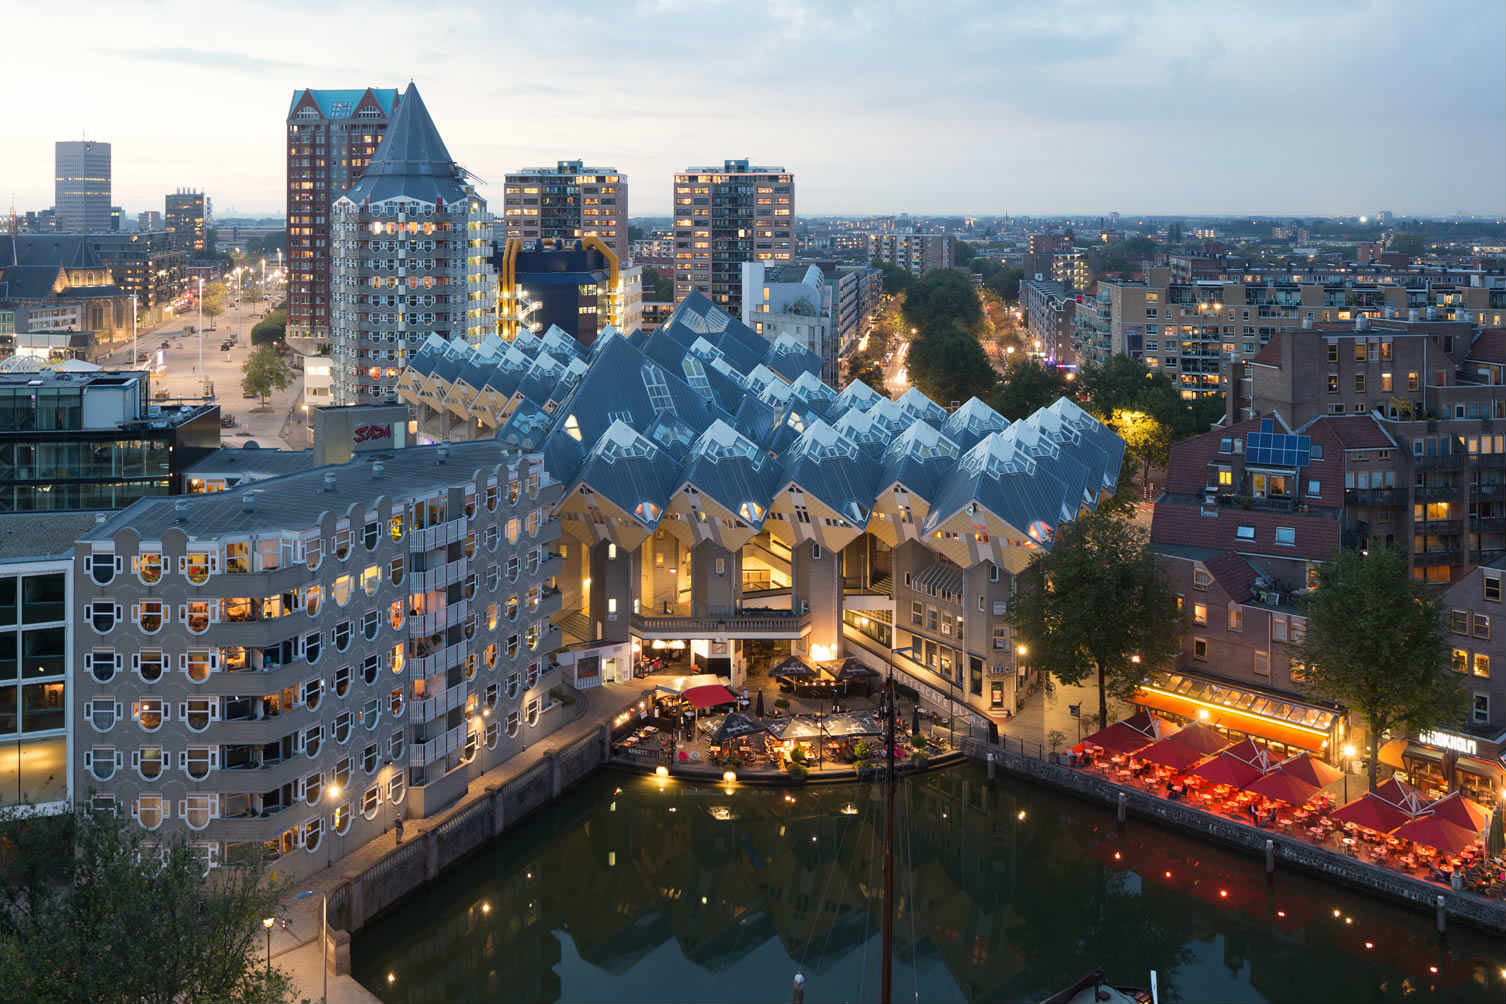 Rotterdam Cube Houses from above